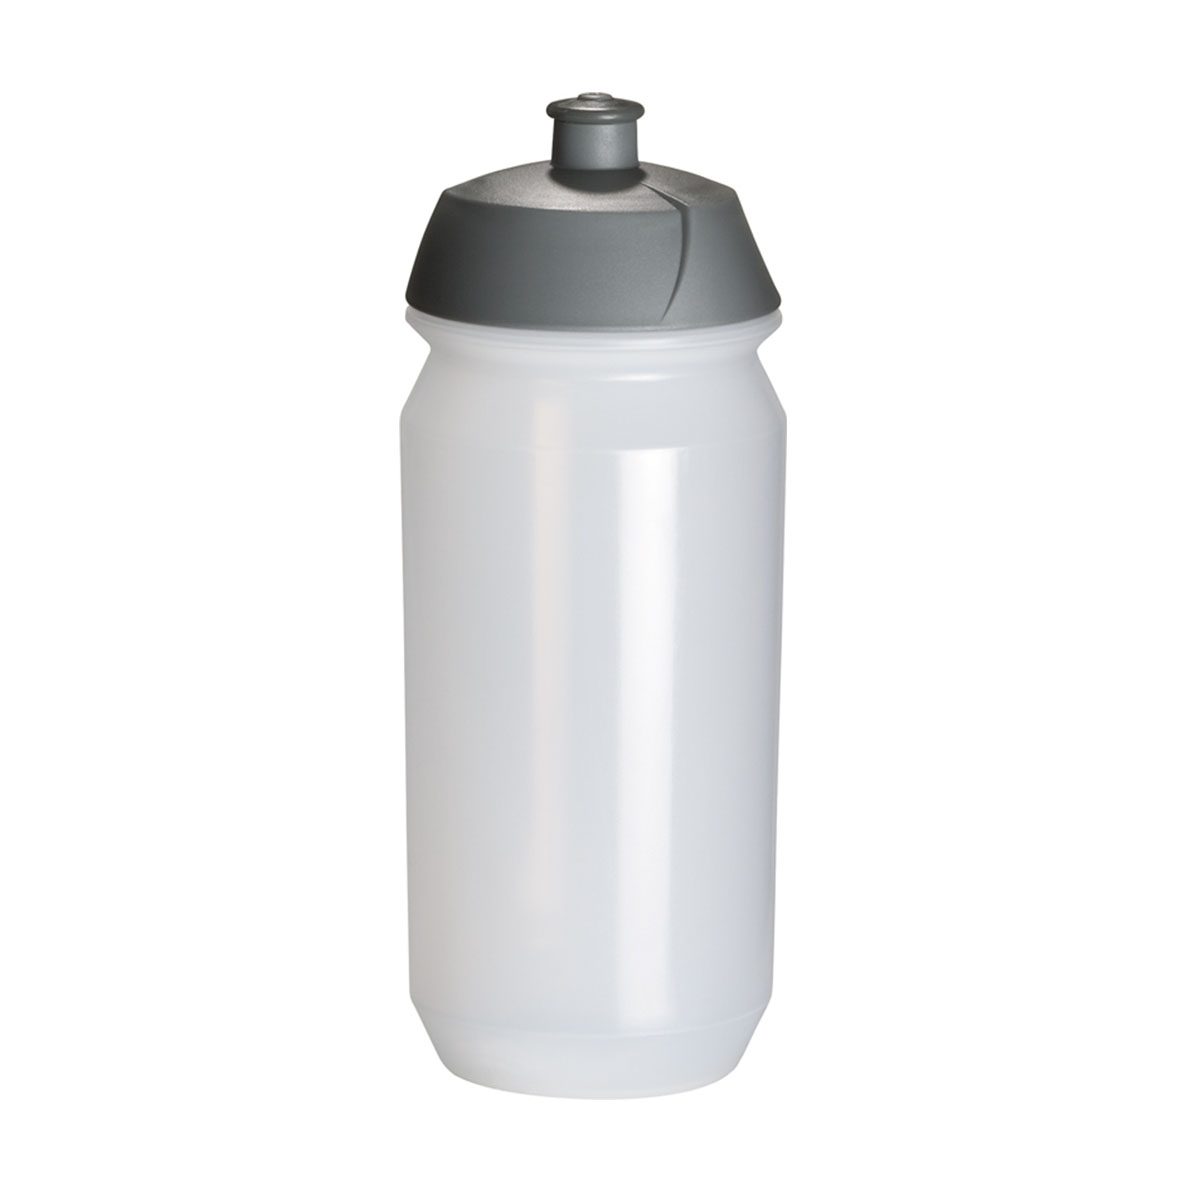 5702 Tacx Shiva Bottle 500ml